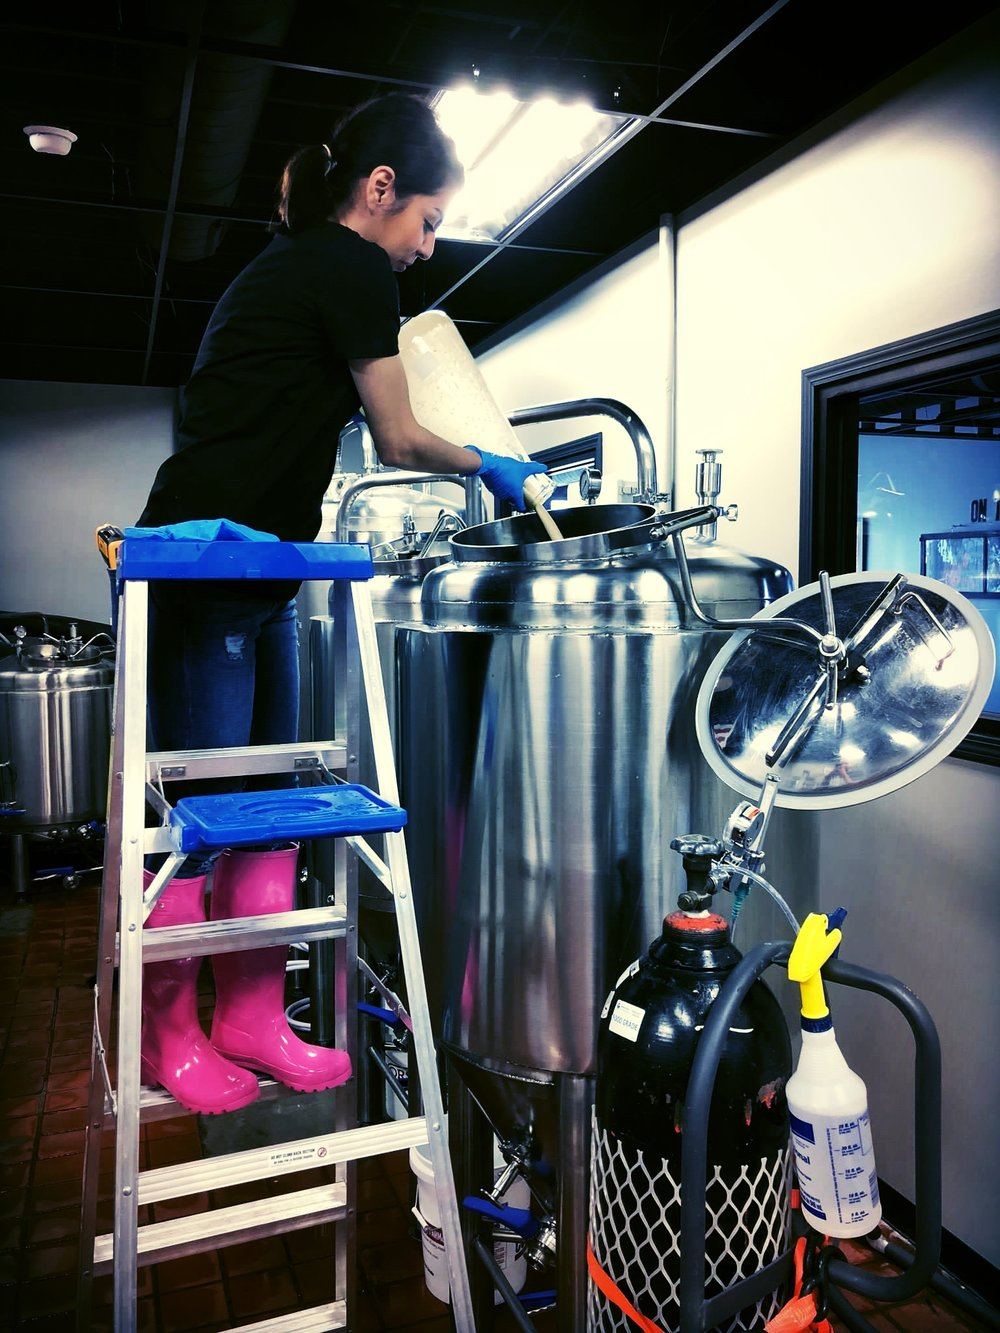 Picture from Jessica during one of her brewing days